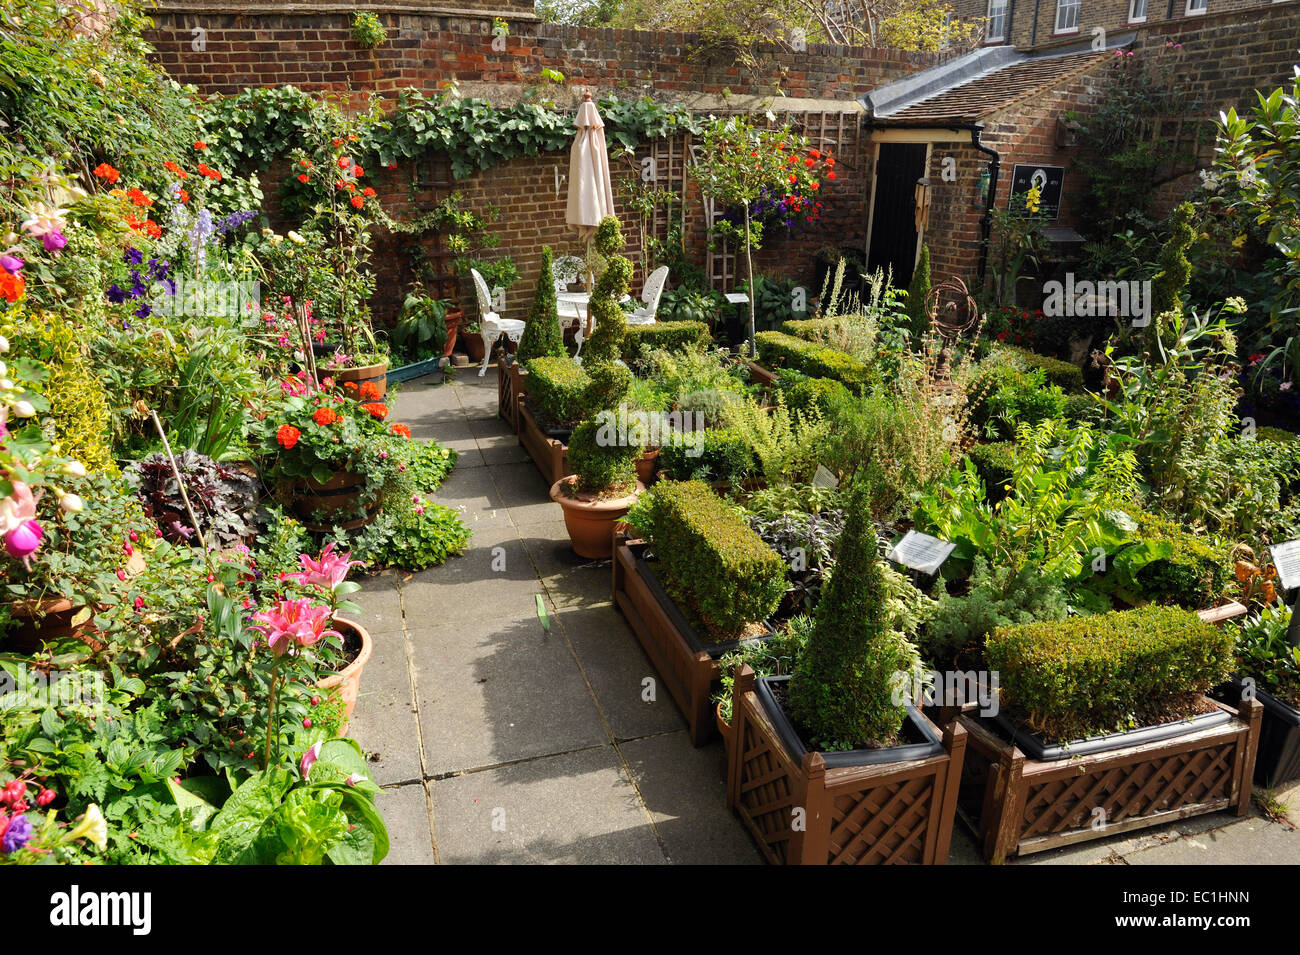 Garden of Six Poor Travellers, Rochester / Watt's Charity. Charles Dickens set his story here: The Seven Poor Travellers - Stock Image